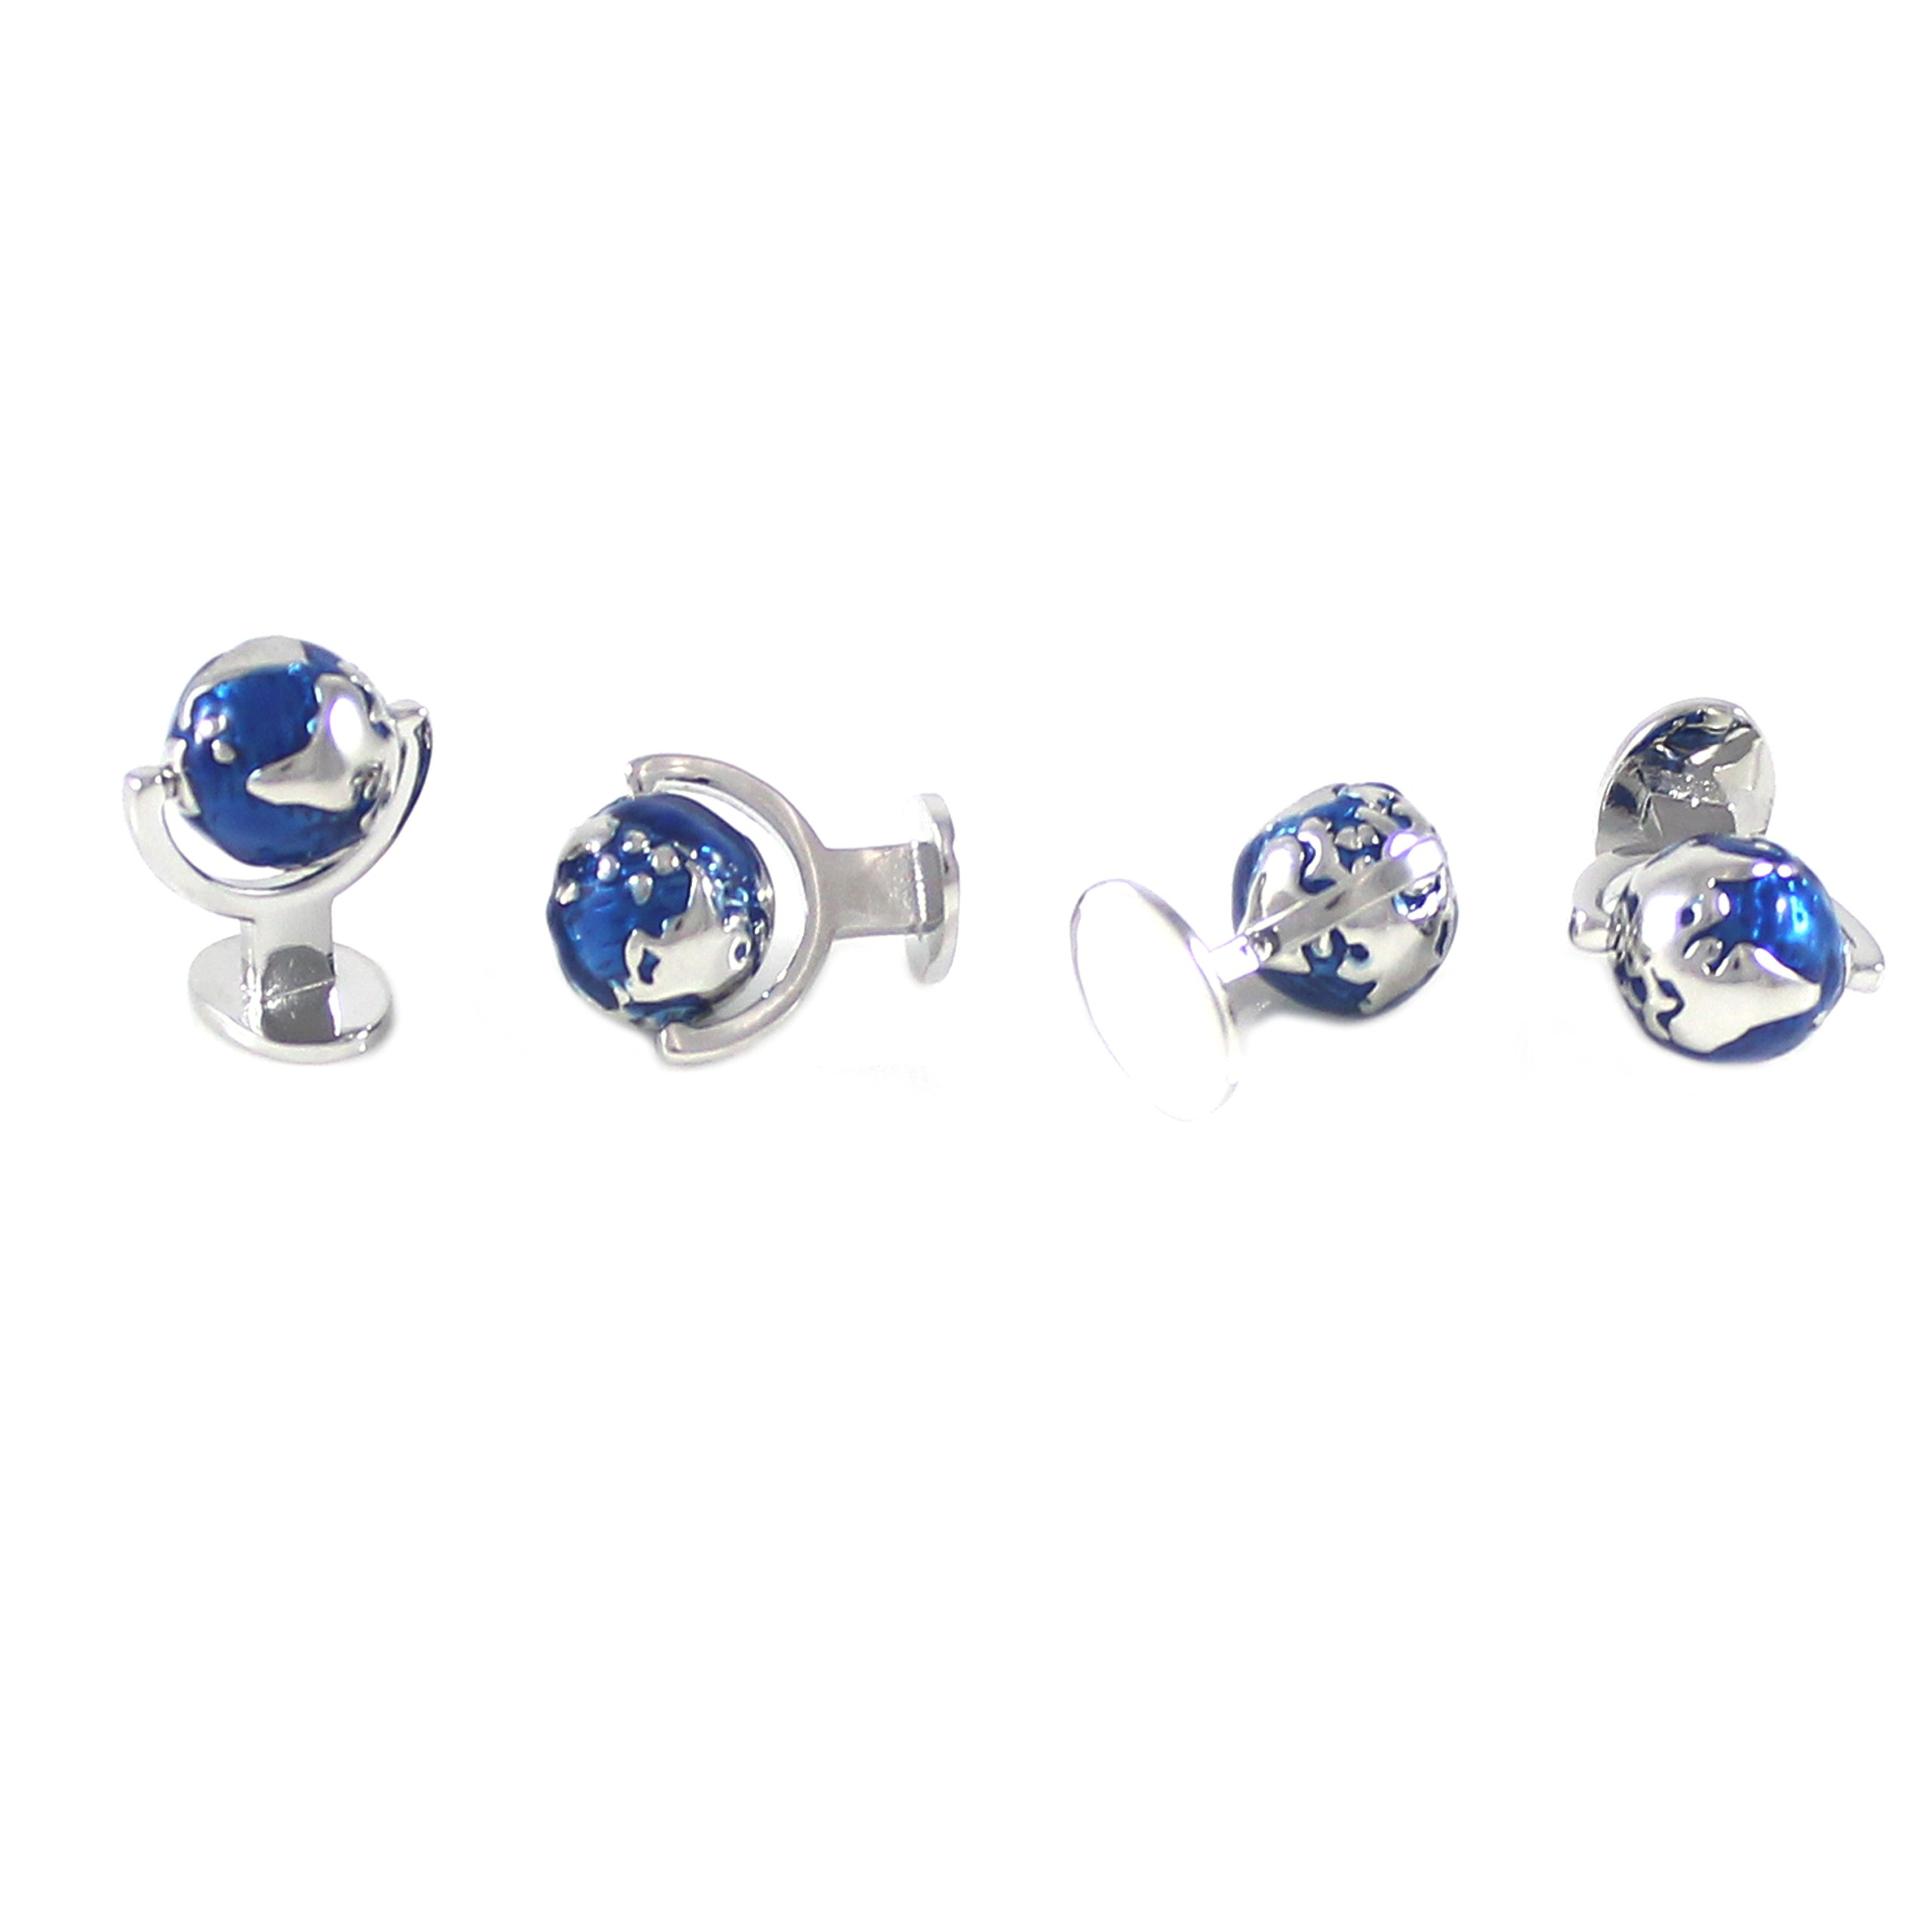 MENDEPOT Classic Rhodium Plated Blue And Silver Globe Cuff Link And Shirt Studs Formal Wear Set With Box Earth Planet Suit Set by MENDEPOT (Image #3)